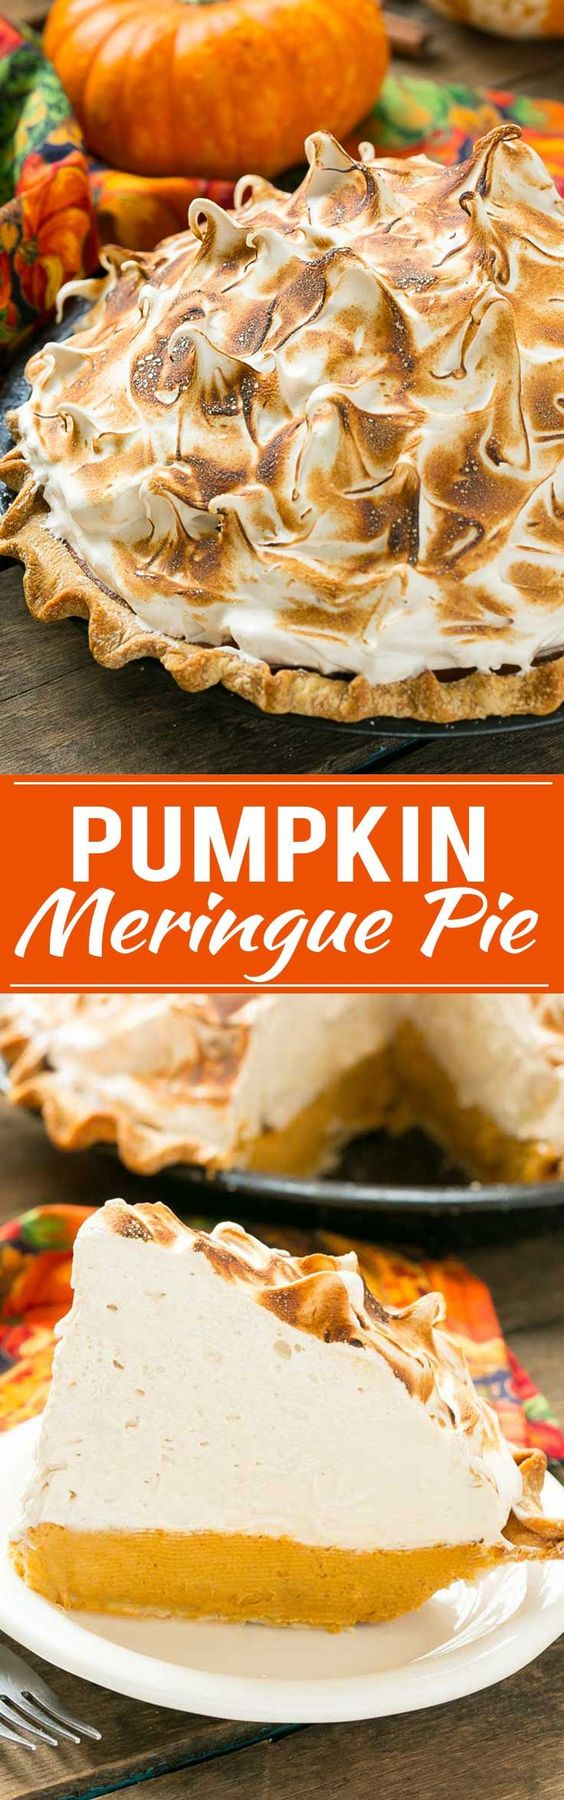 Homemade Pumpkin Meringue Pie Dessert Recipe via Dinner at the Zoo - The most delicious pumpkin pie topped with a mountain of toasted brown sugar meringue. - Favorite EASY Pies Recipes - Brunch Dessert No-Bake + Bake Musts